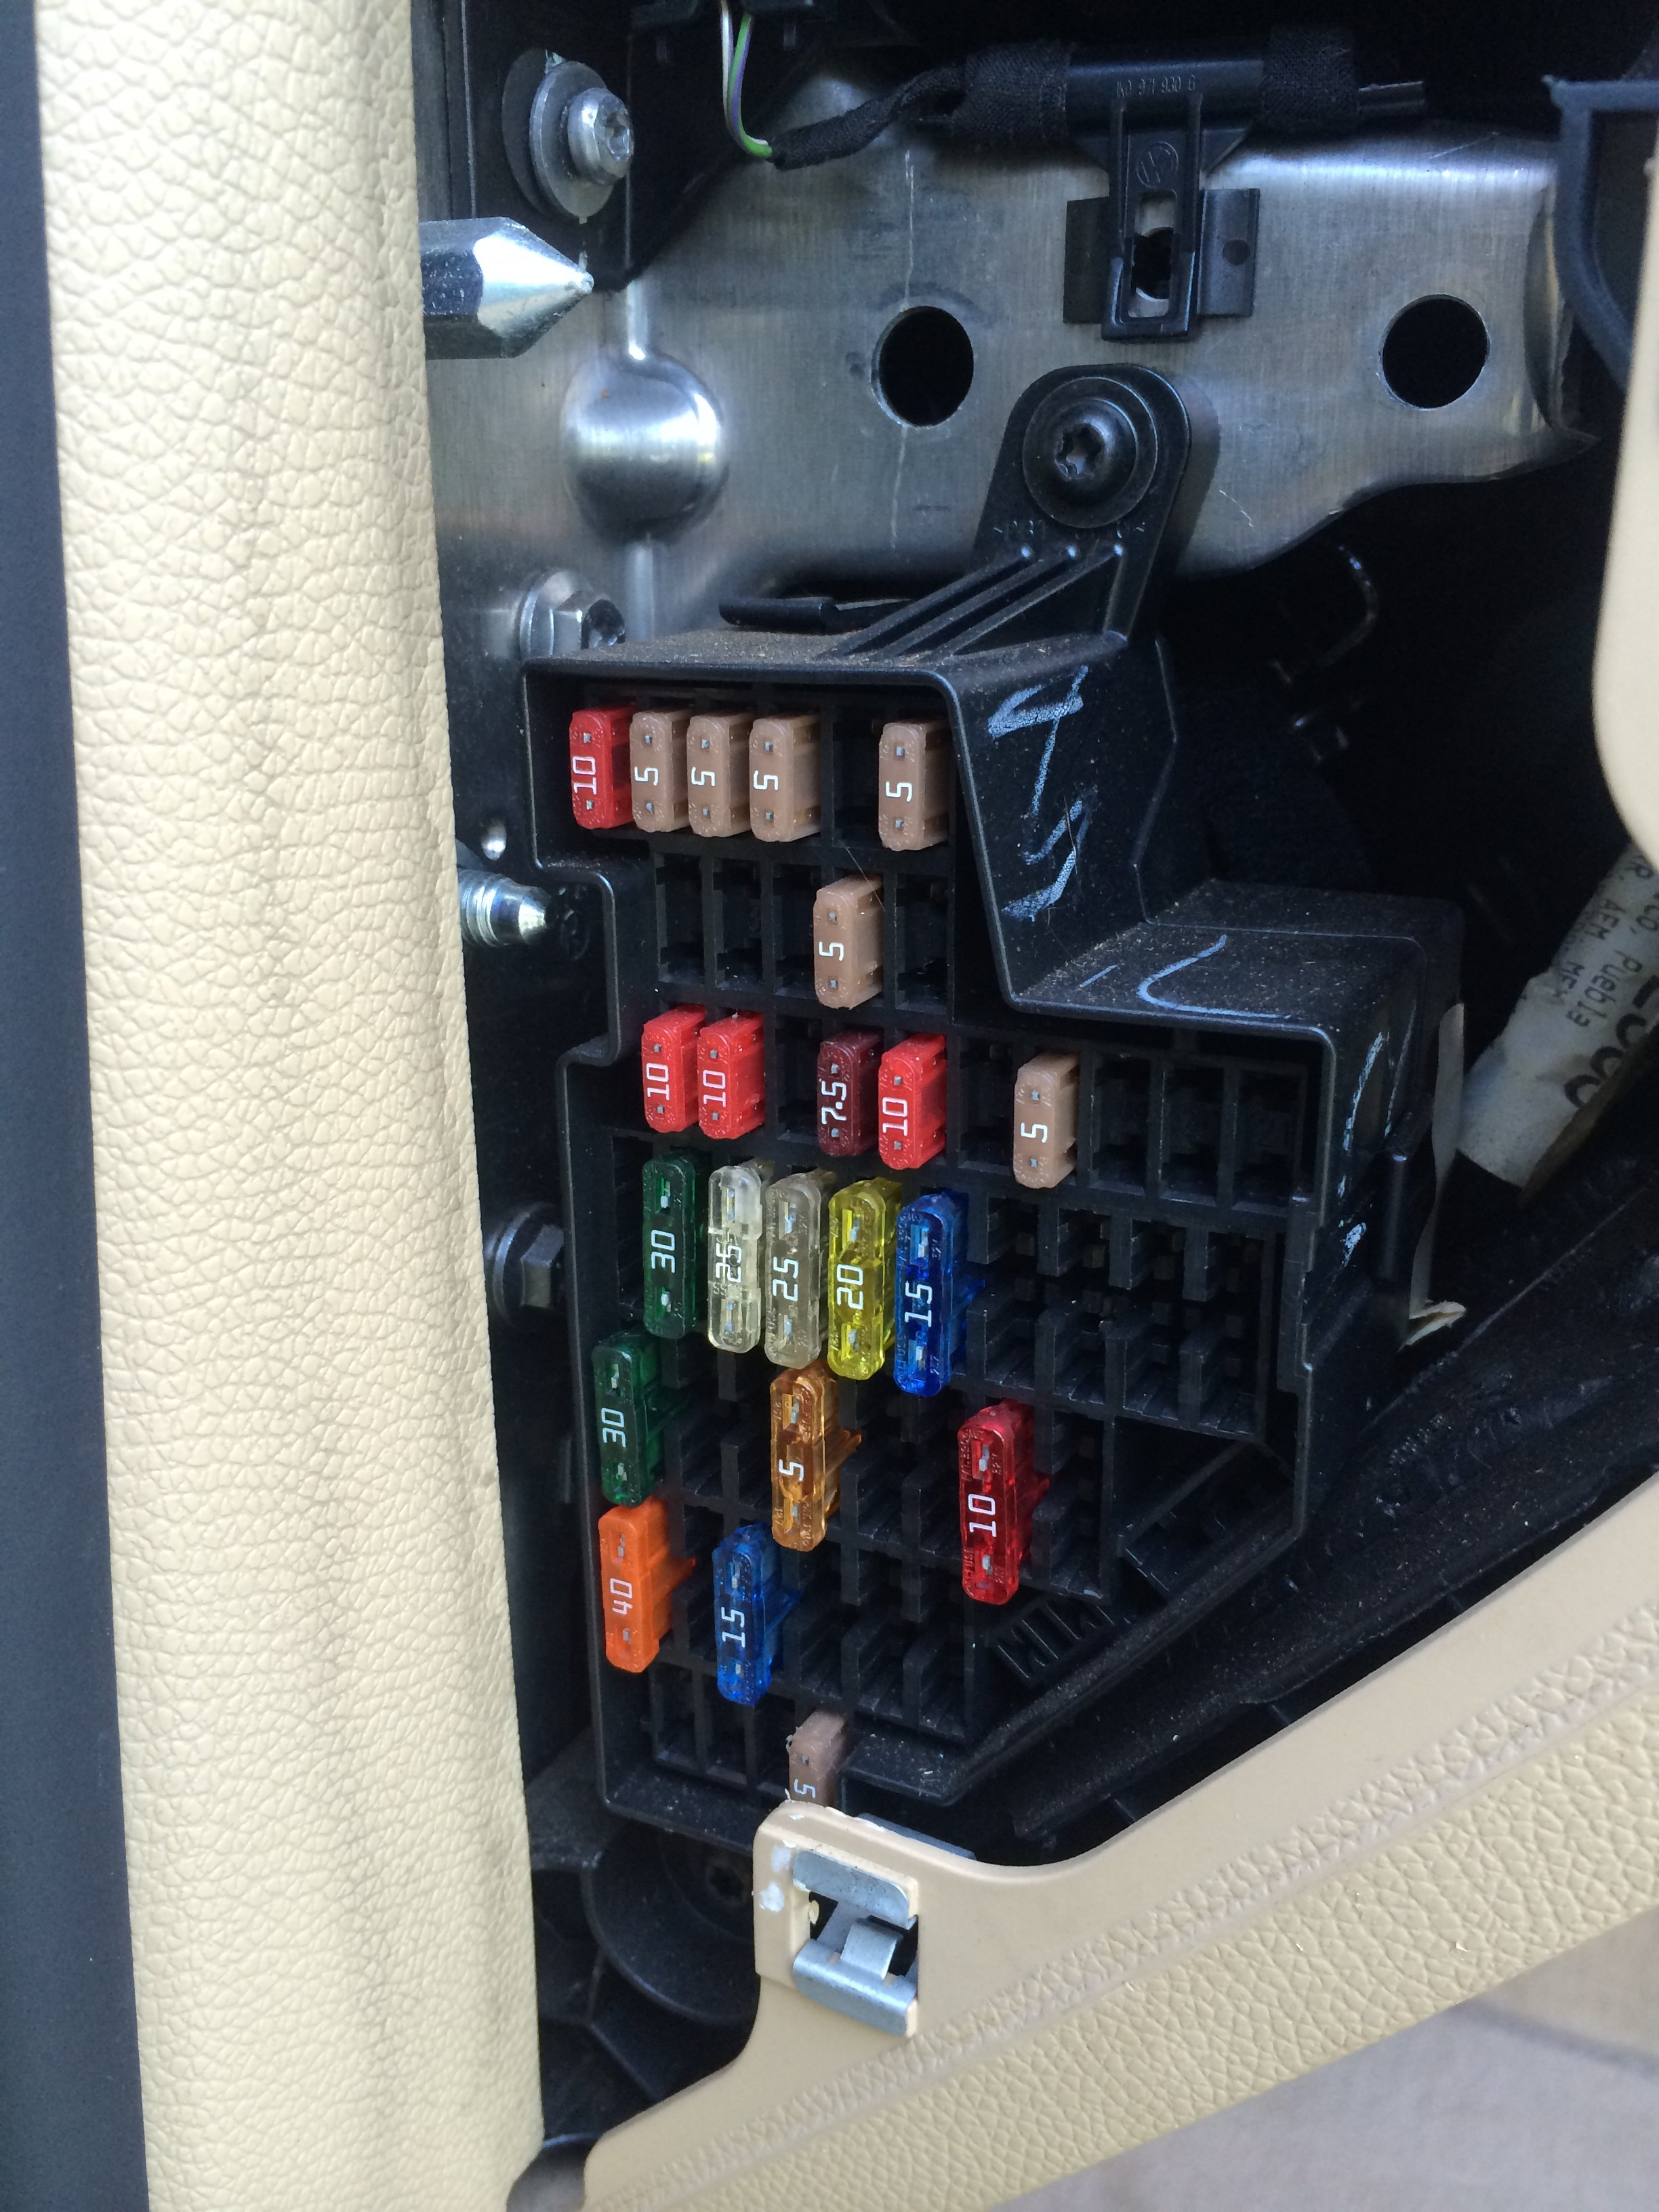 Volkswagen Jetta Fuse Box Wiring Library 2013 Tdi Diagram I Need A Or All Of Them So Can Figure Out Which